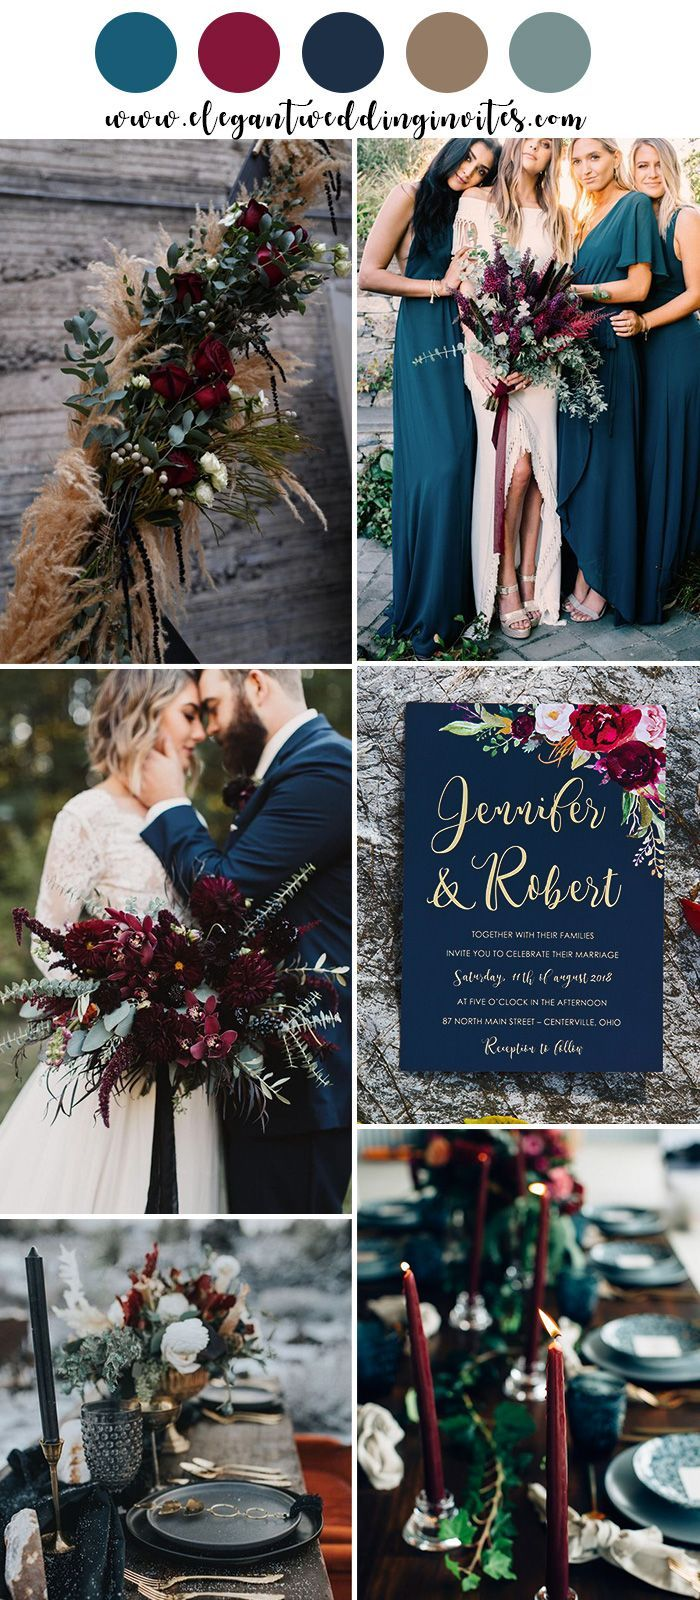 Moody Boho Chic Wedding Ideas with Matching Floral Wedding Invites #fallweddingideas